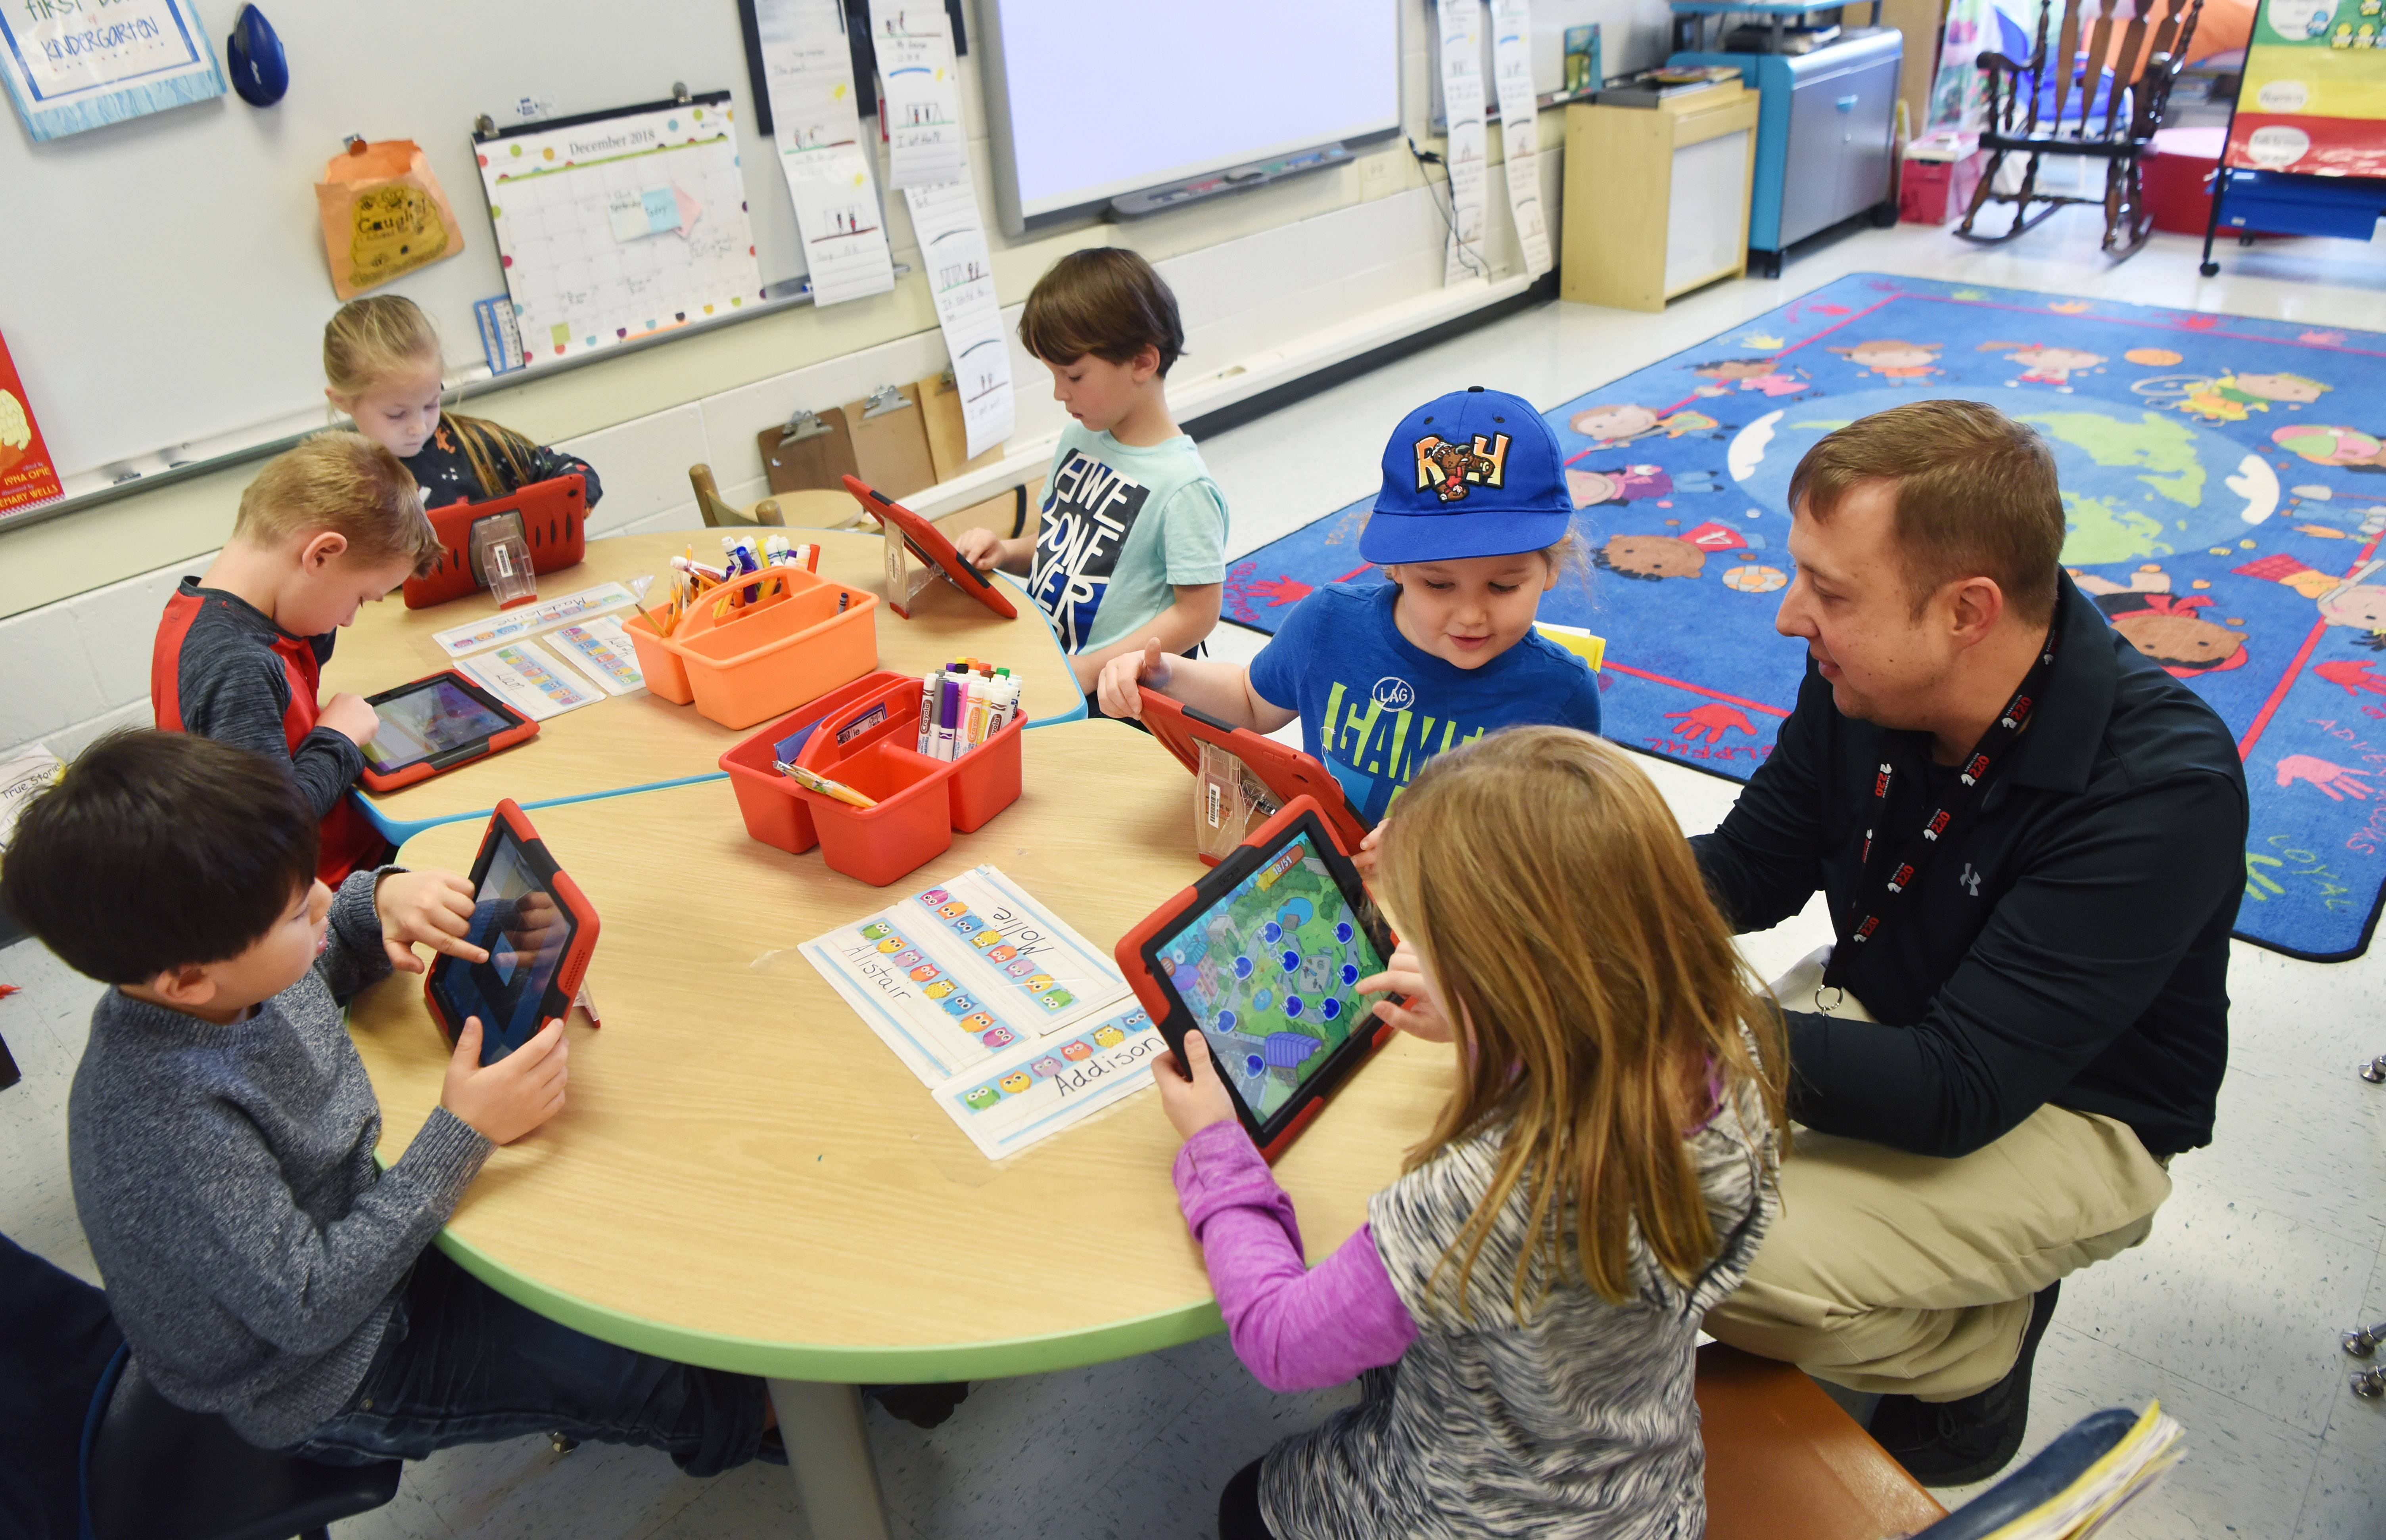 Kindergarten teacher George Vlasis works with a group of his students at Hough Street Elementary School in Barrington. Vlasis recently published his first children's book, written with input from his students.